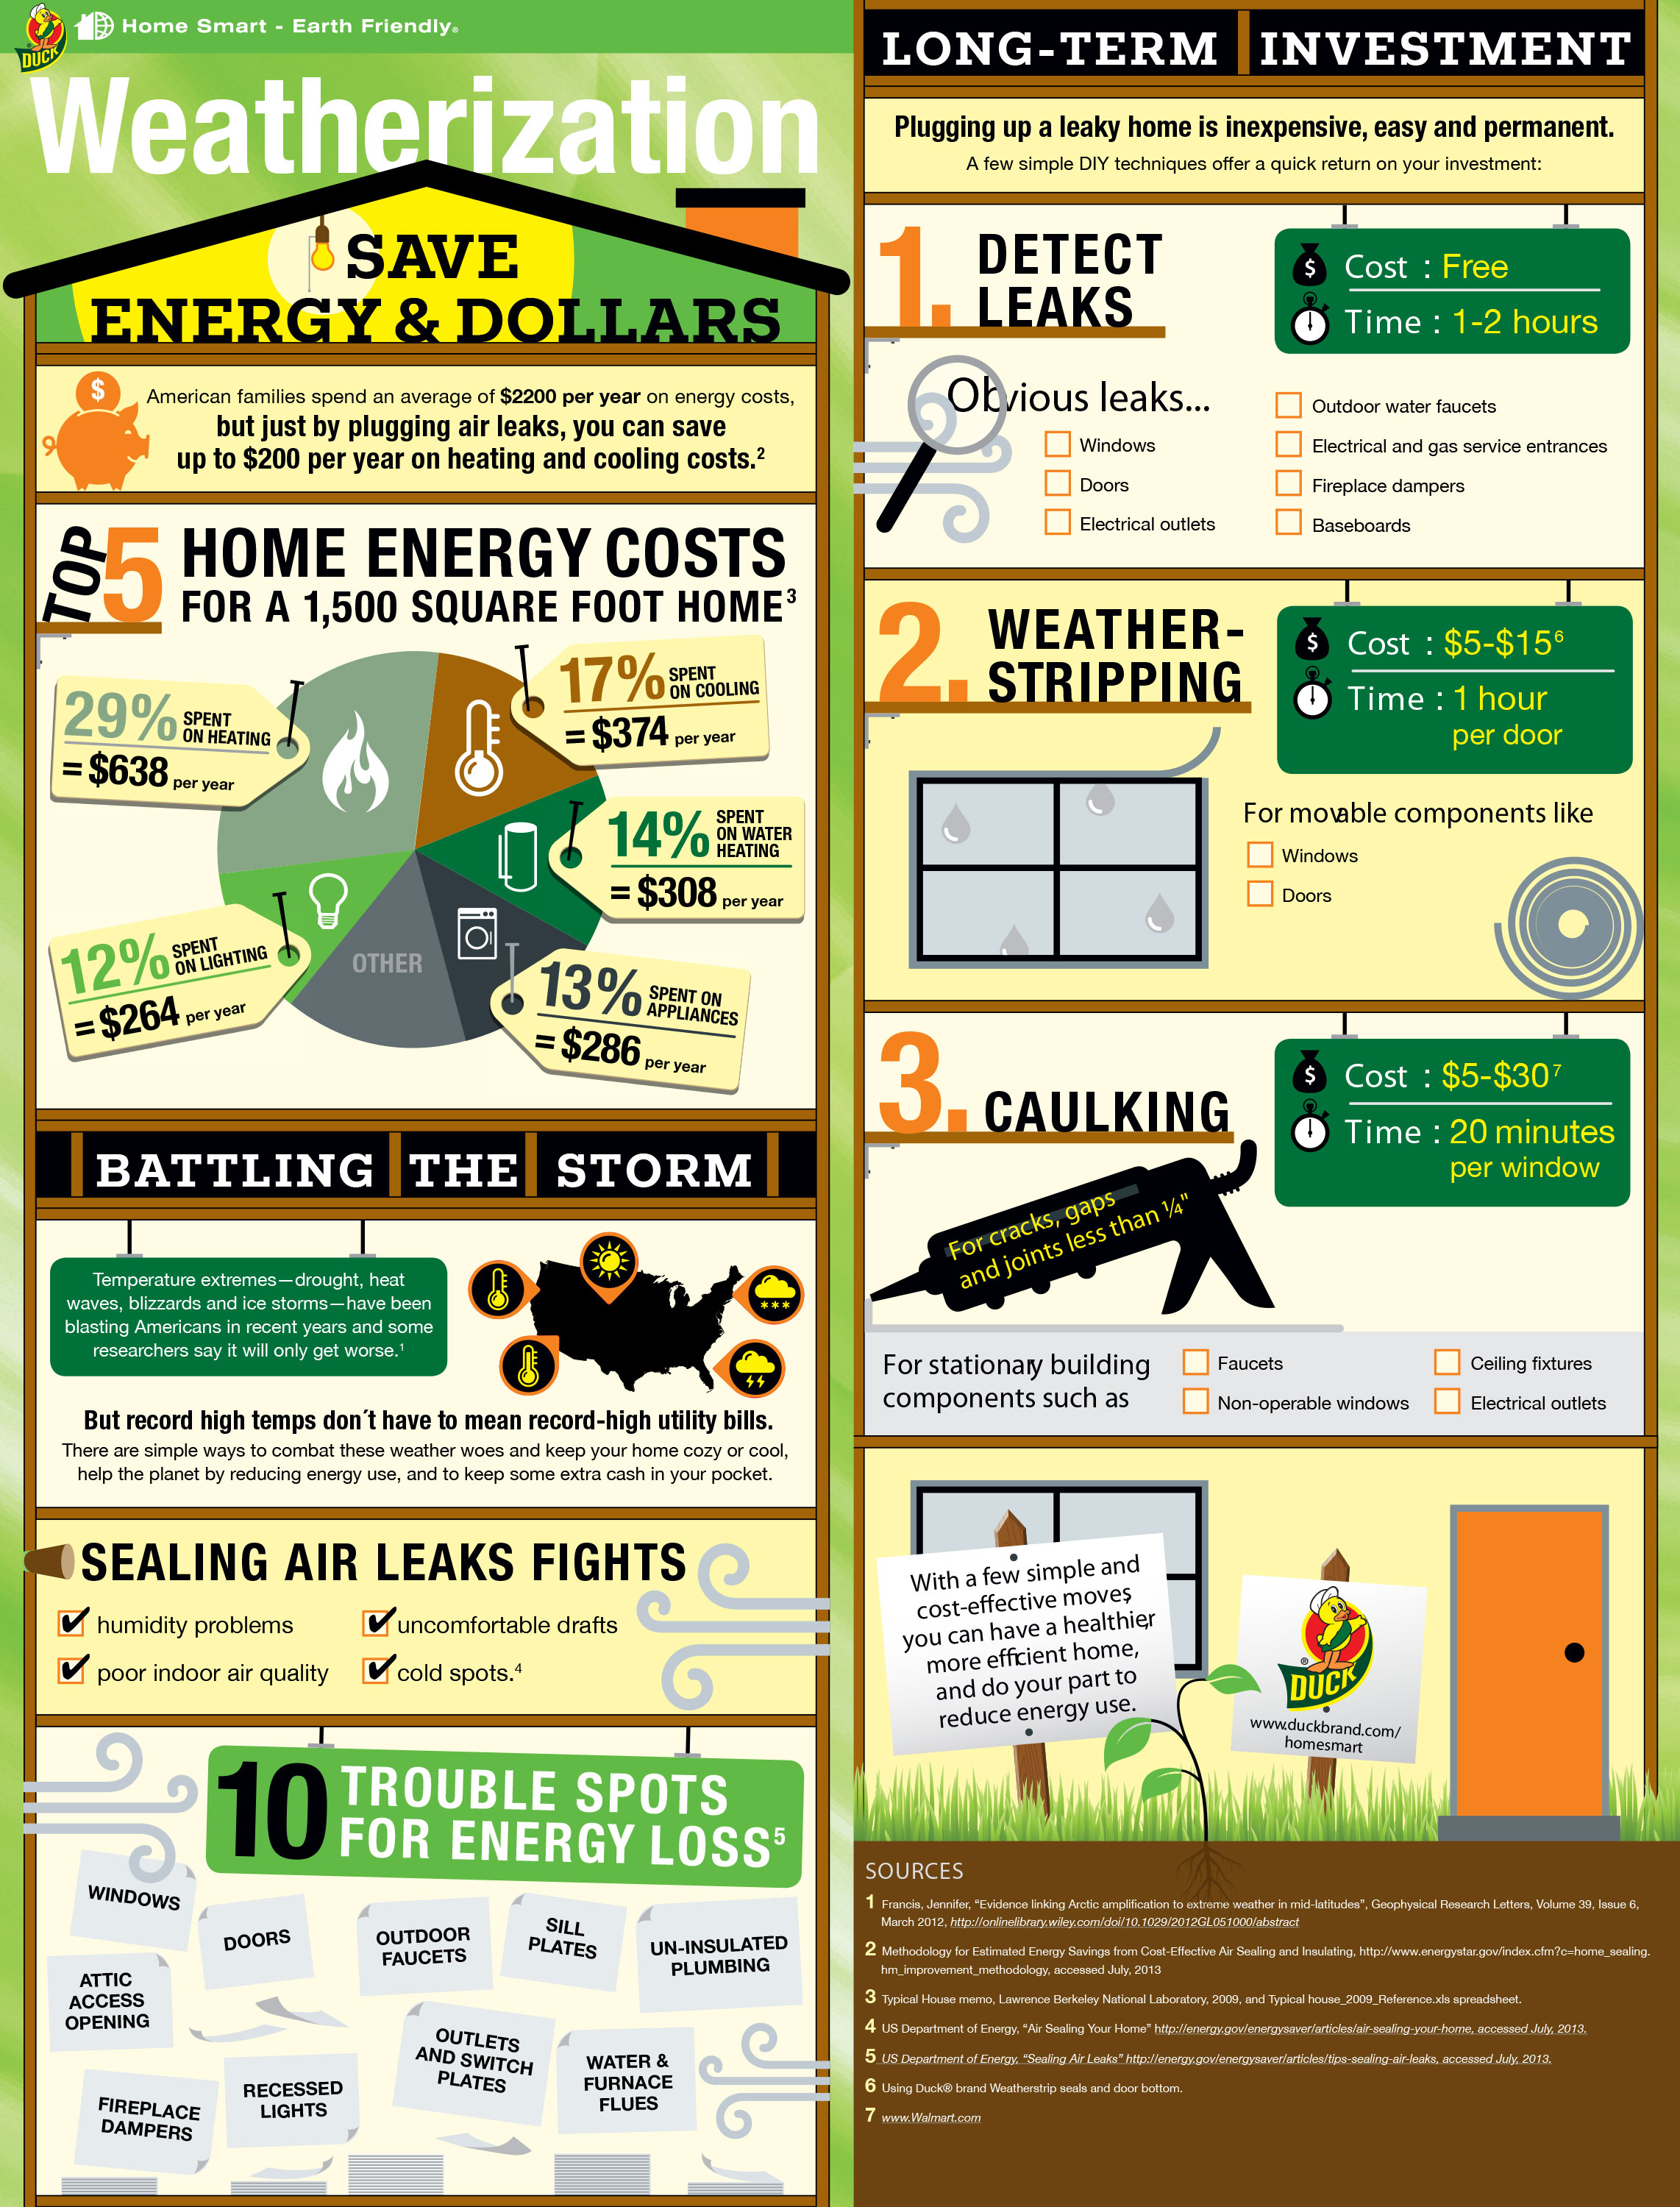 This is helpful info about energy loss in your home. Image Source:  Duck Brand